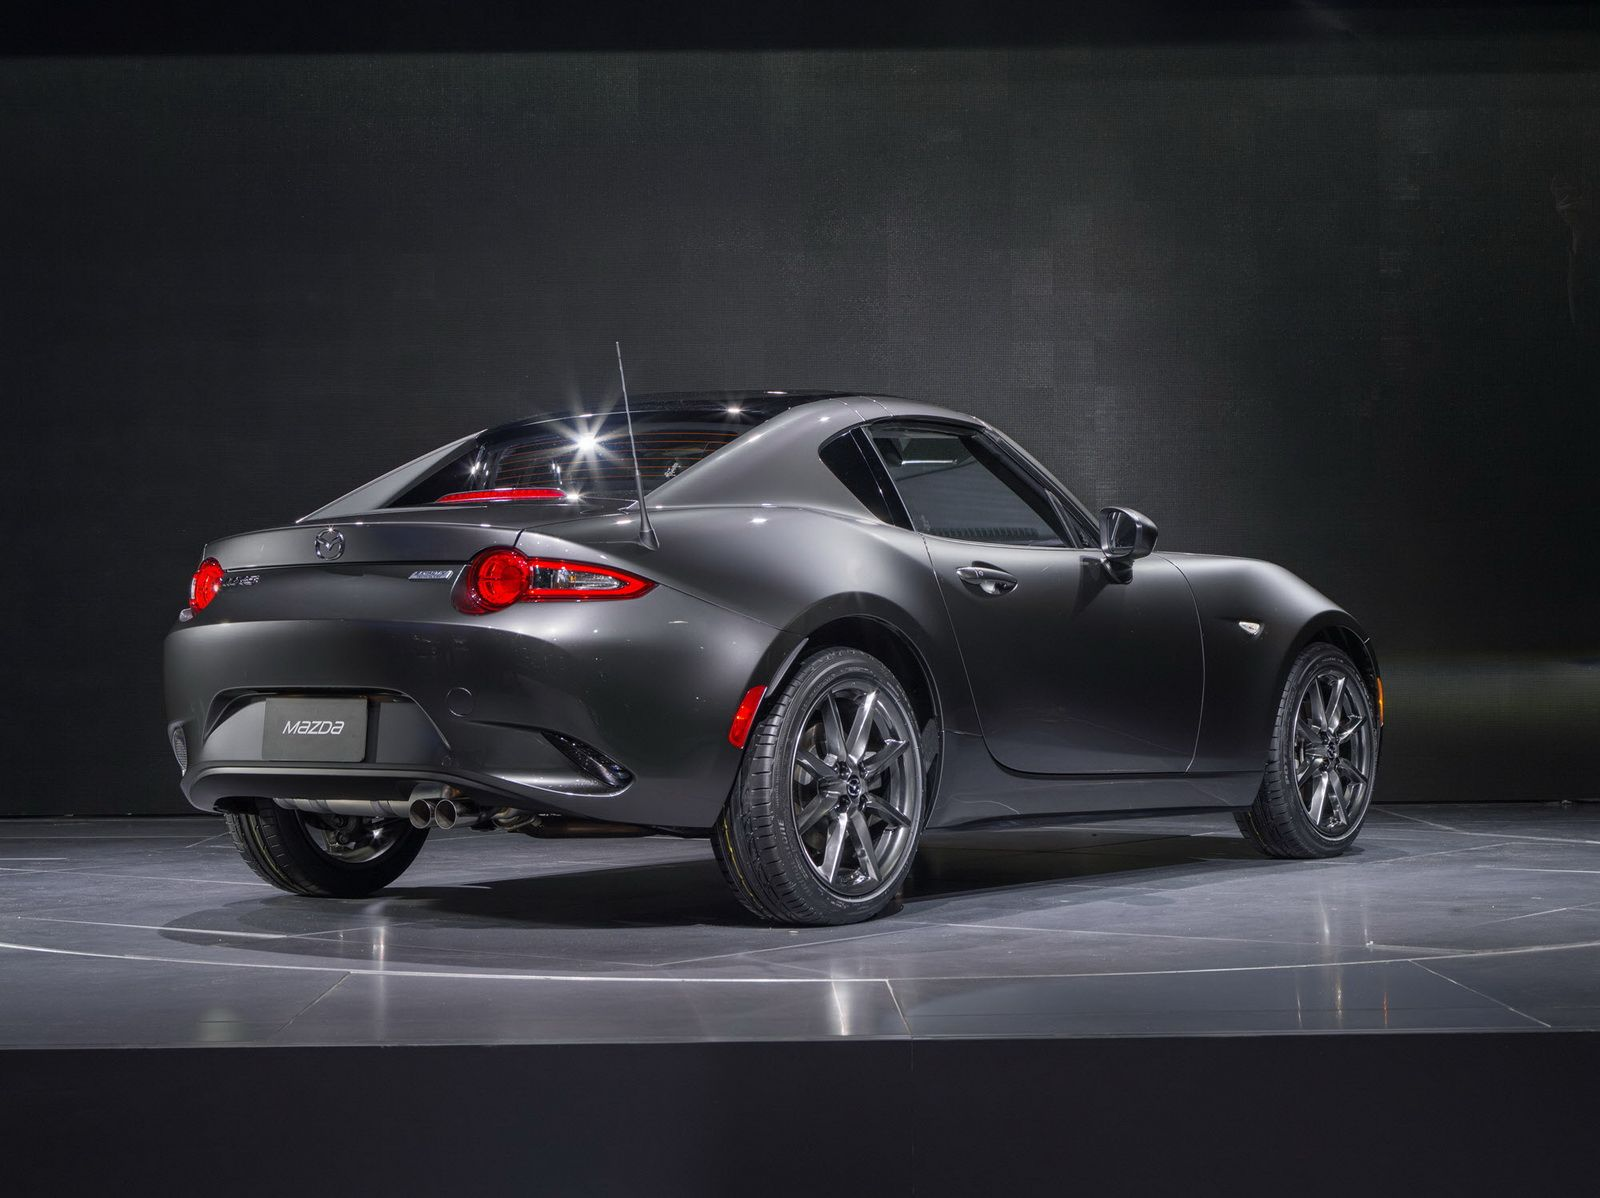 2017 mazda mx 5 miata rf launch edition limited to just 1 000 units